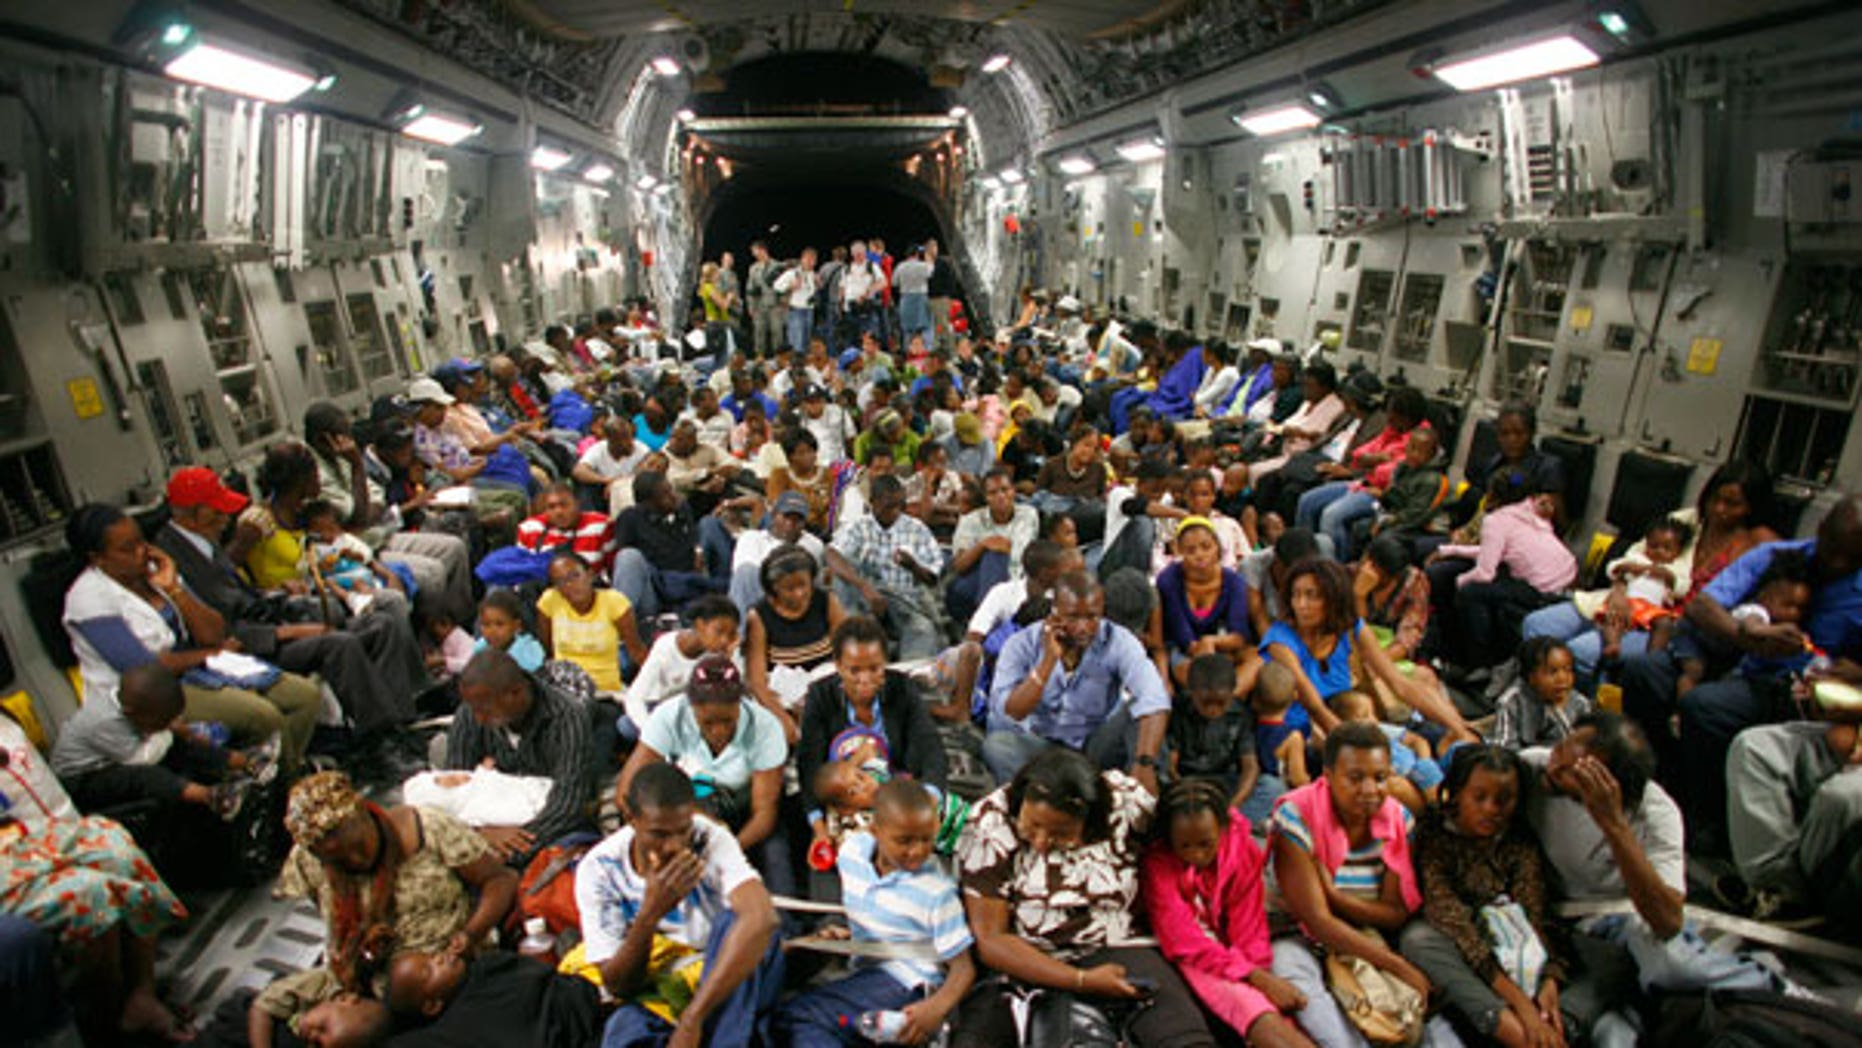 Sunday: The C-17 Globemaster from McChord Air Force Base participated in a massive airlift of personnel and relief supplies into earthquake-damaged Haiti. It then took evacuees to Orlando, Florida. (AP)